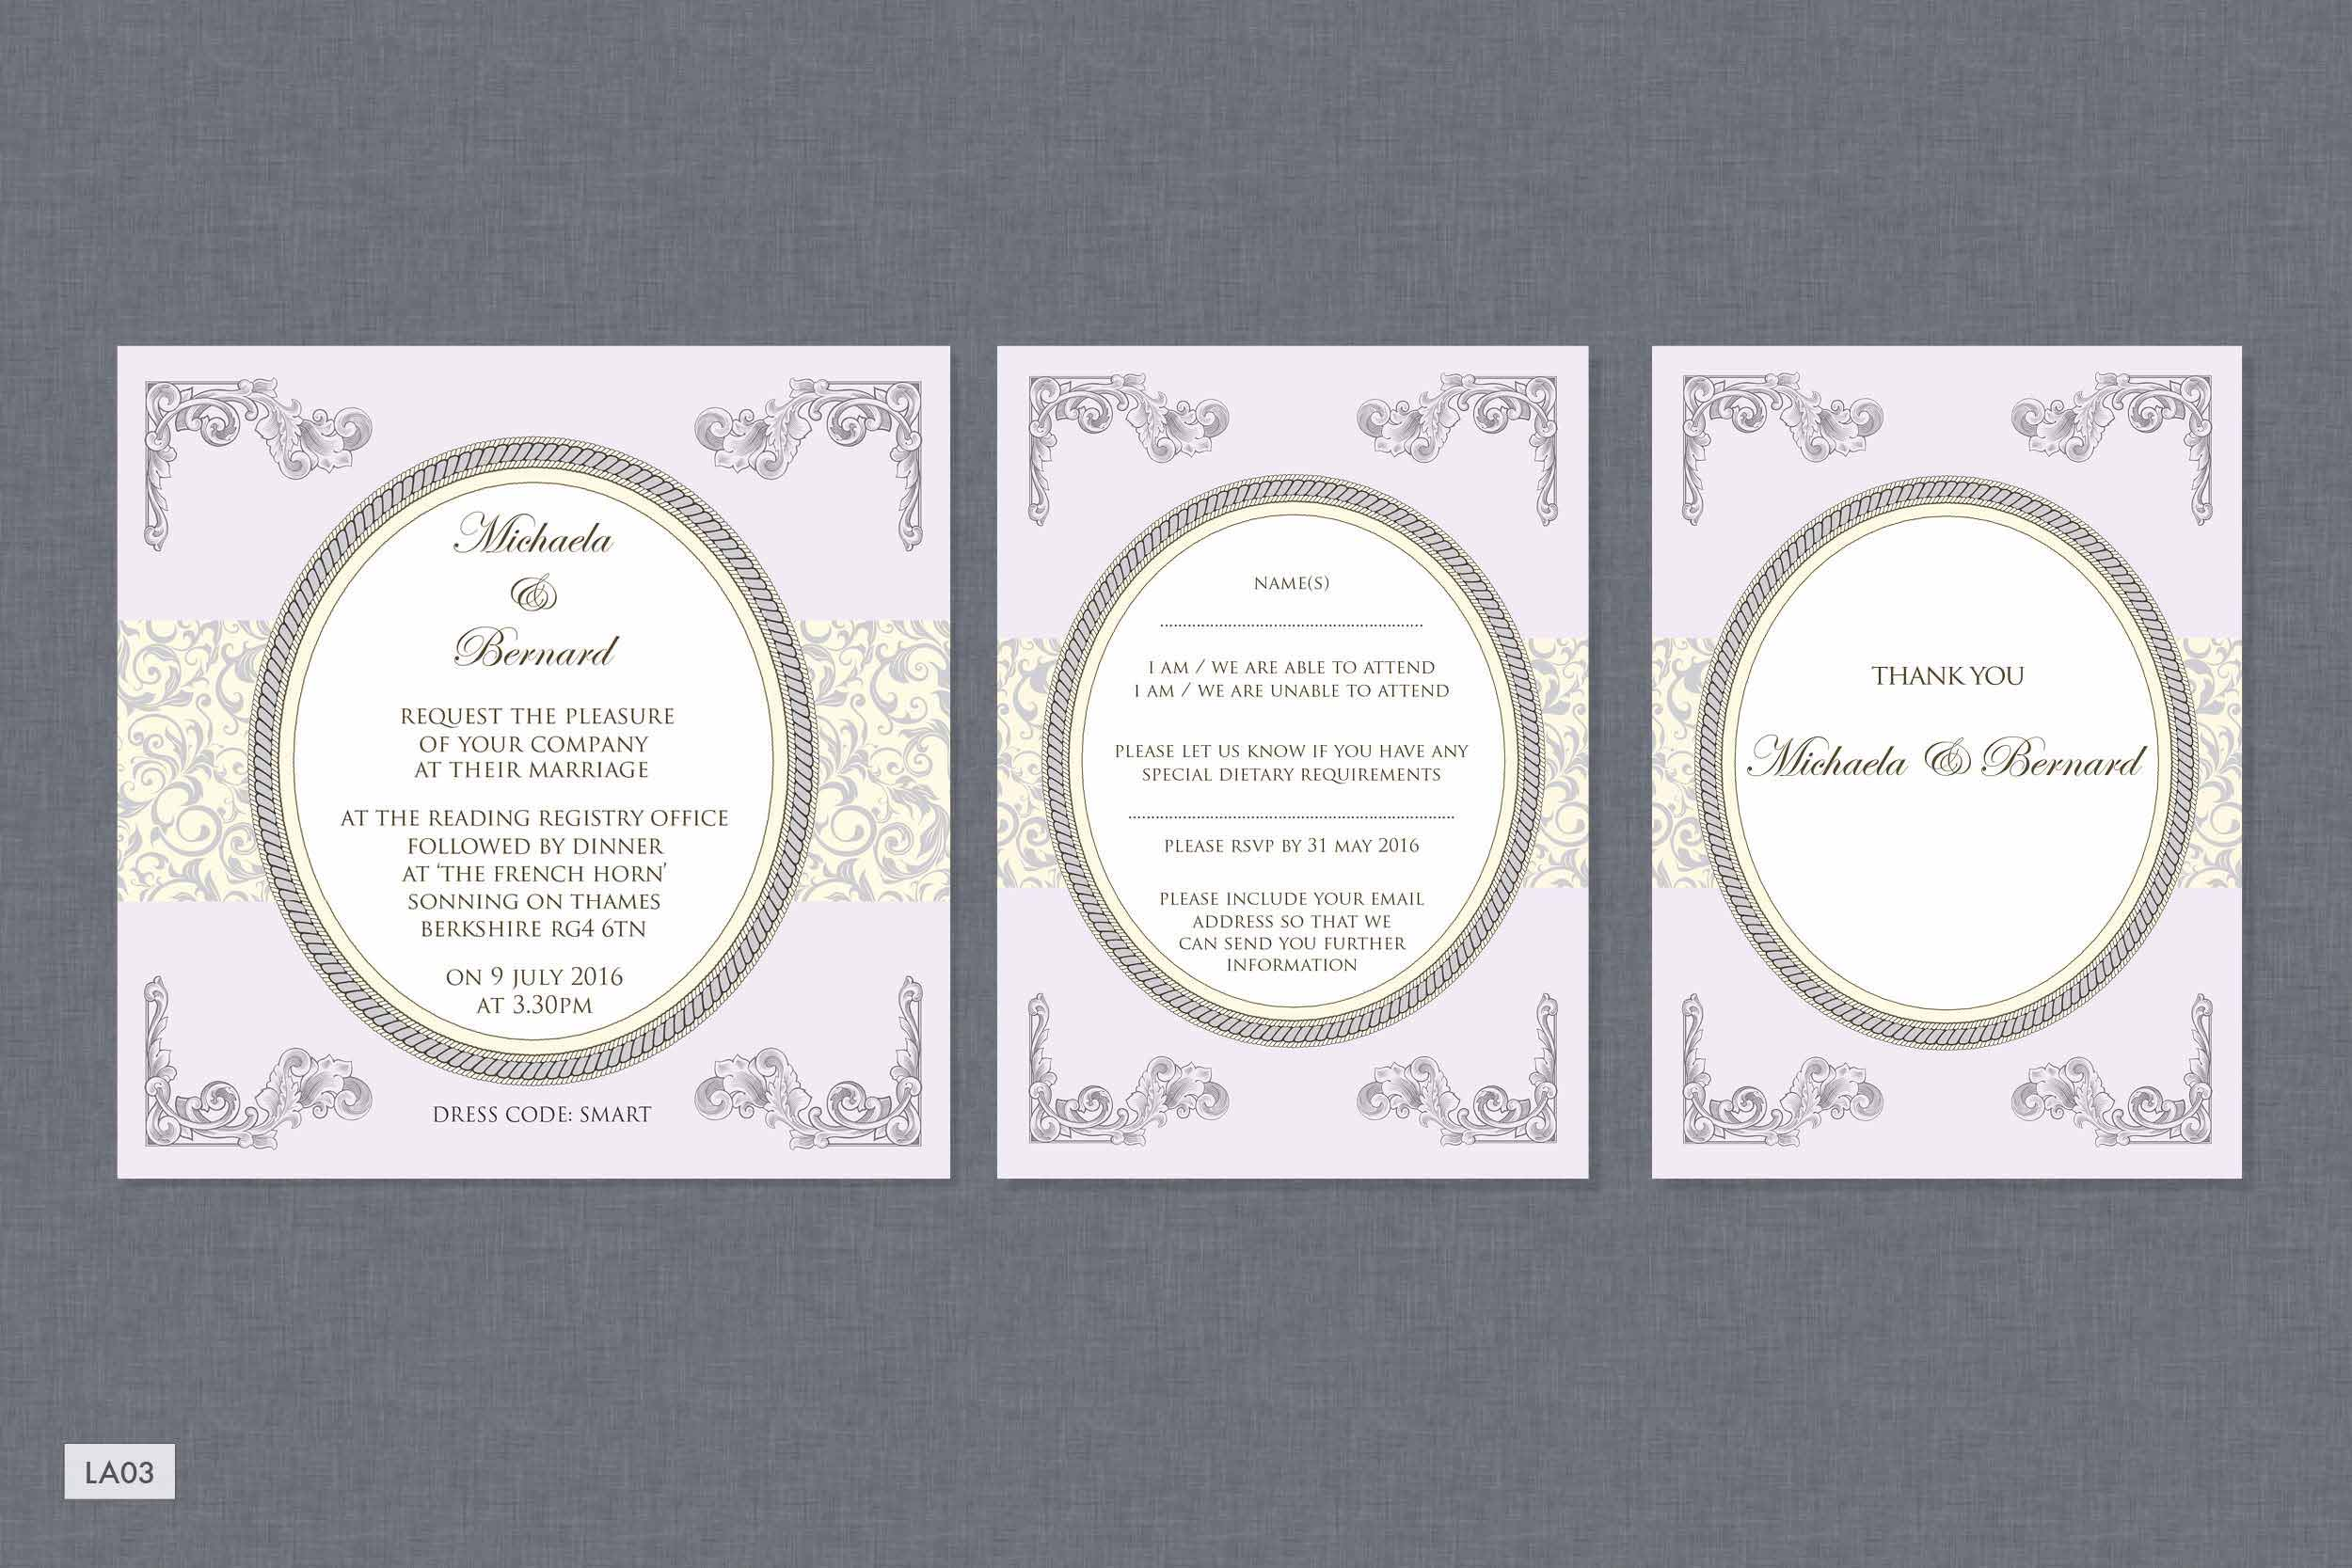 ananya-wedding-stationery-lace13.jpg